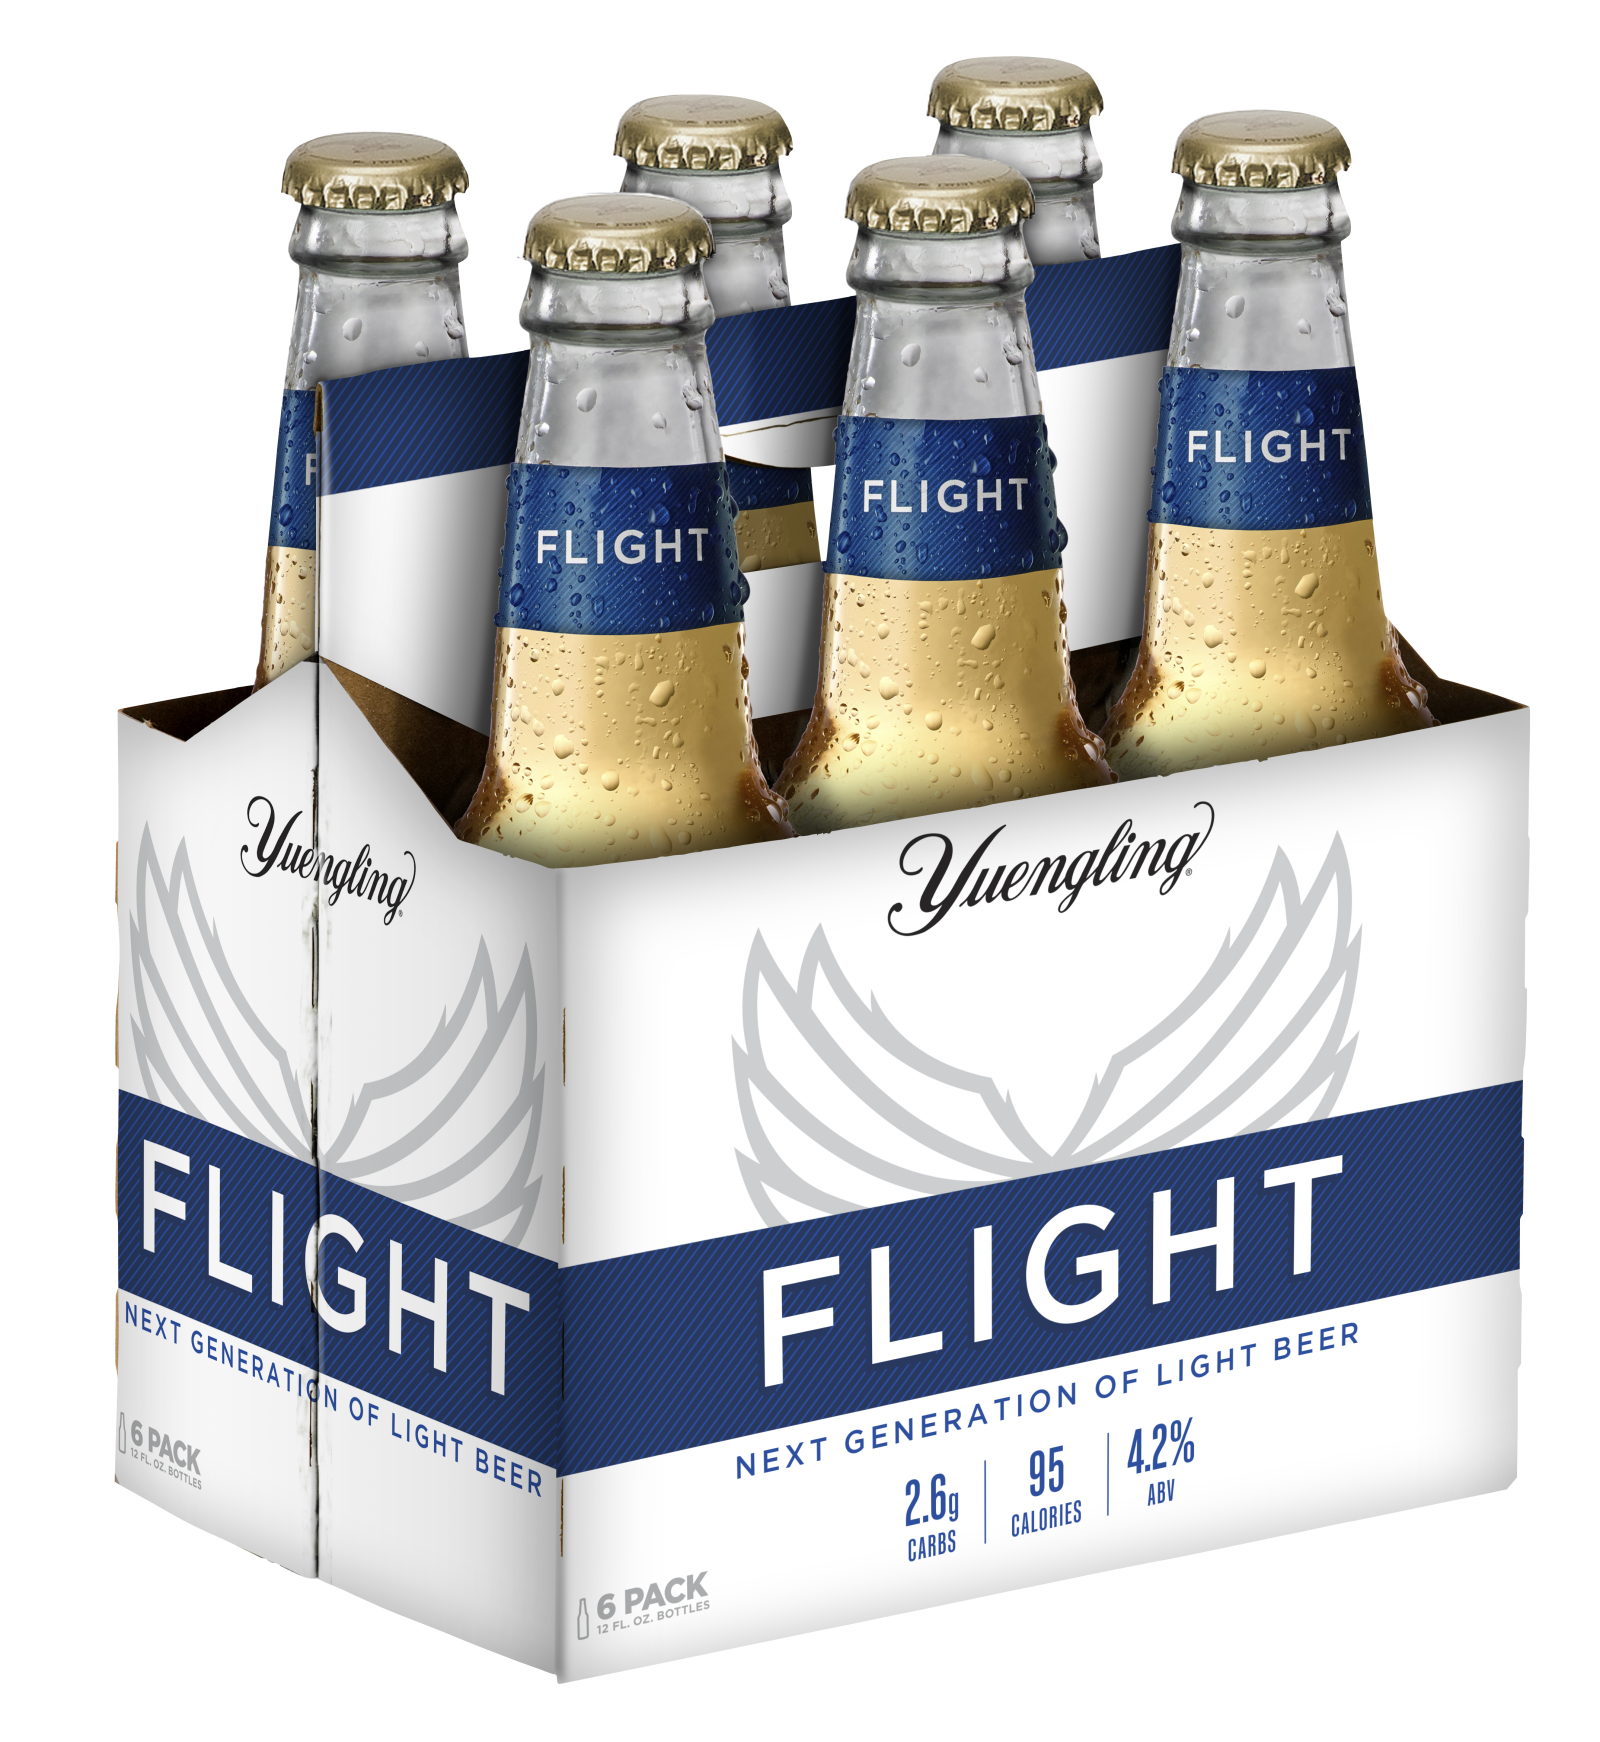 Flight by Yuengling, America's oldest brewery's launches the next generation of light beers